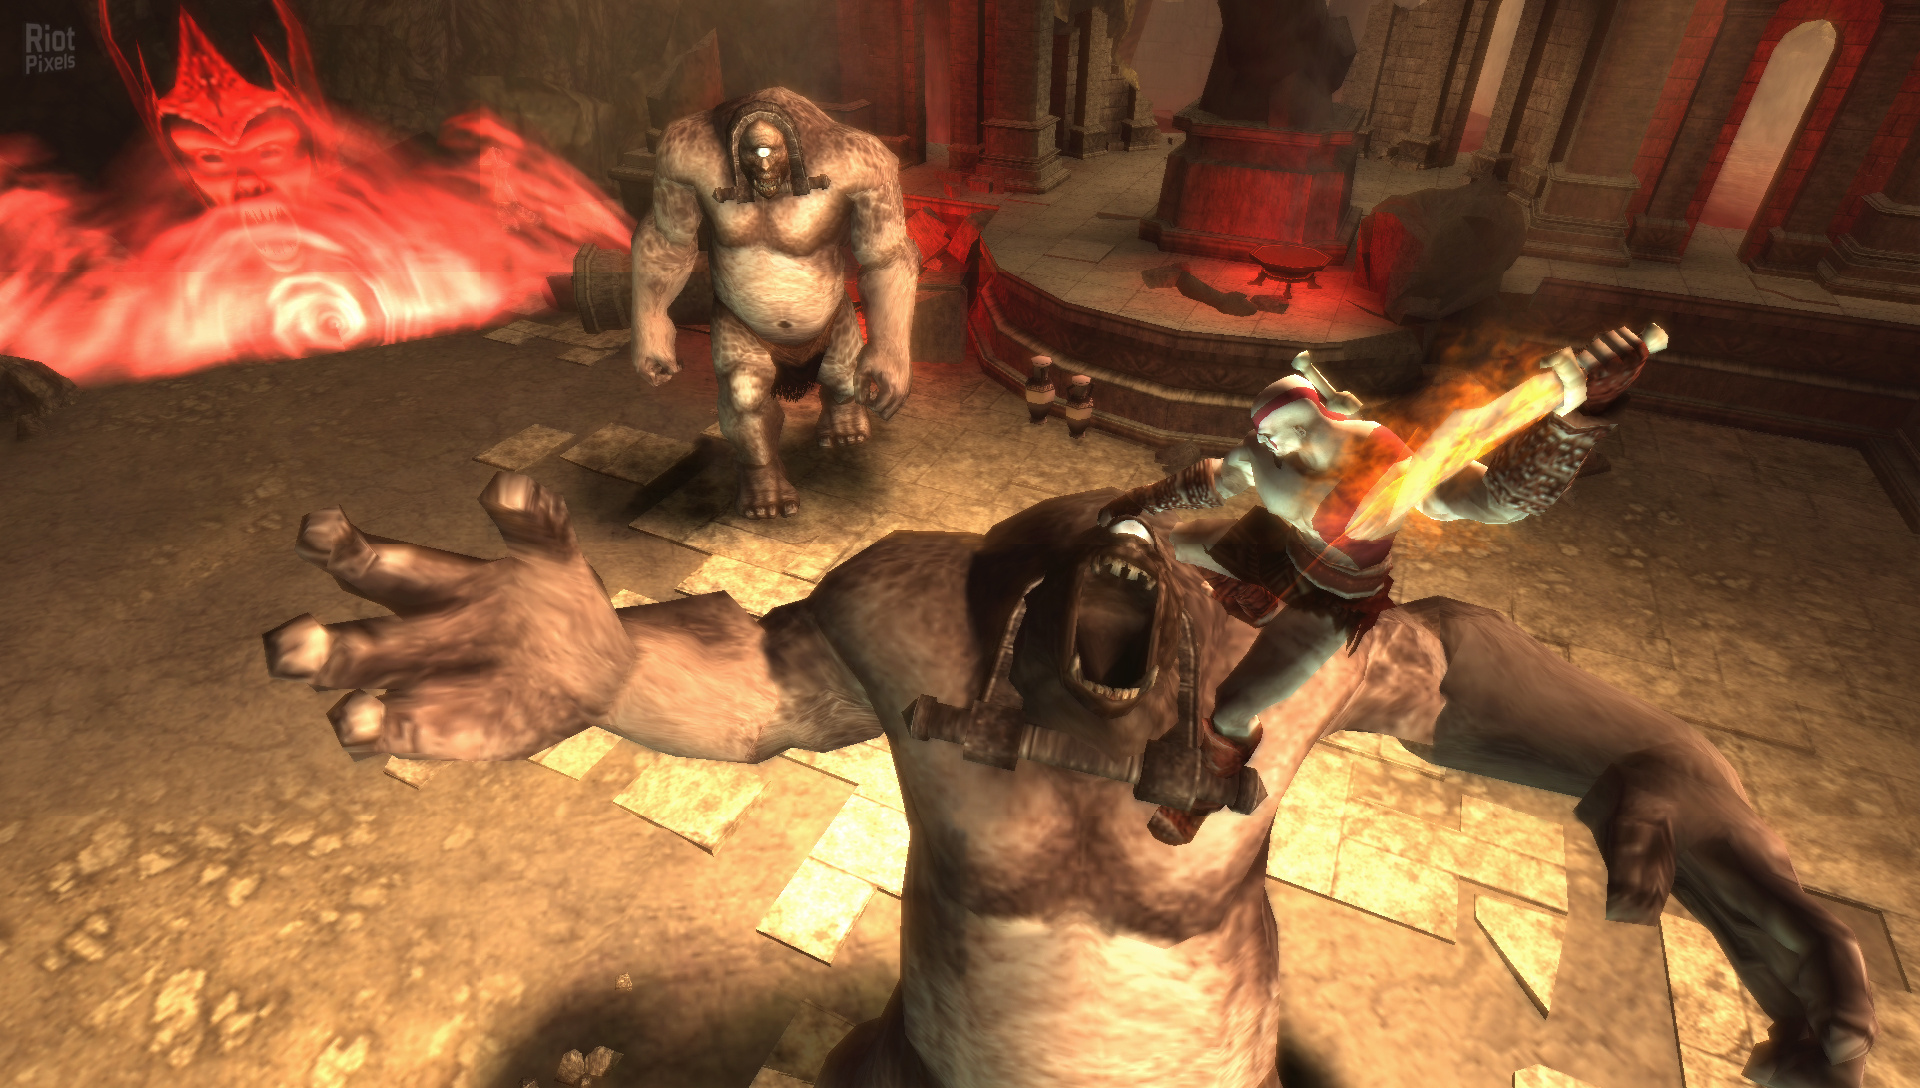 God of war 3 chains of olympus psp download